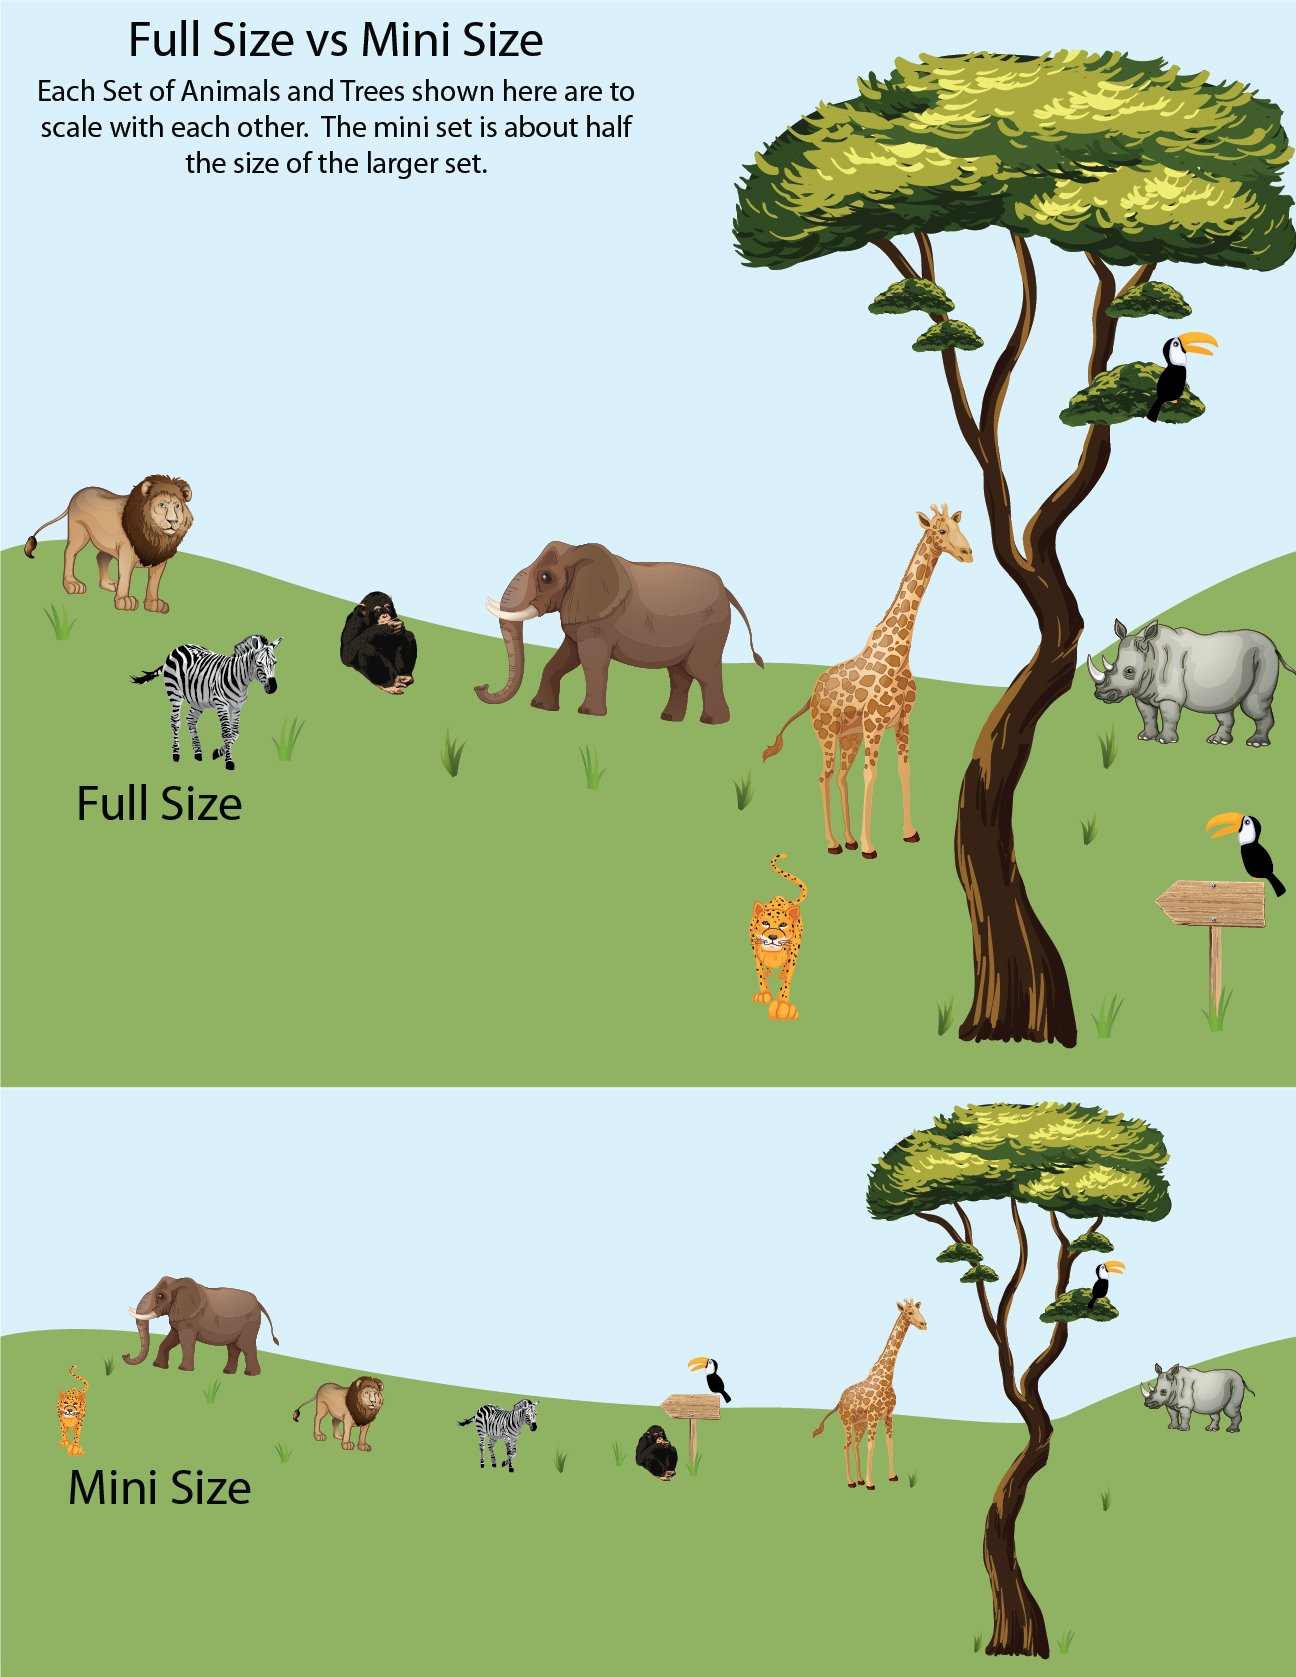 Jungle Tree Wall Decals, Jungle Stickers, Lion Decals, Drawn Jungle Animals Decal by Nursery Decals and More (Image #4)